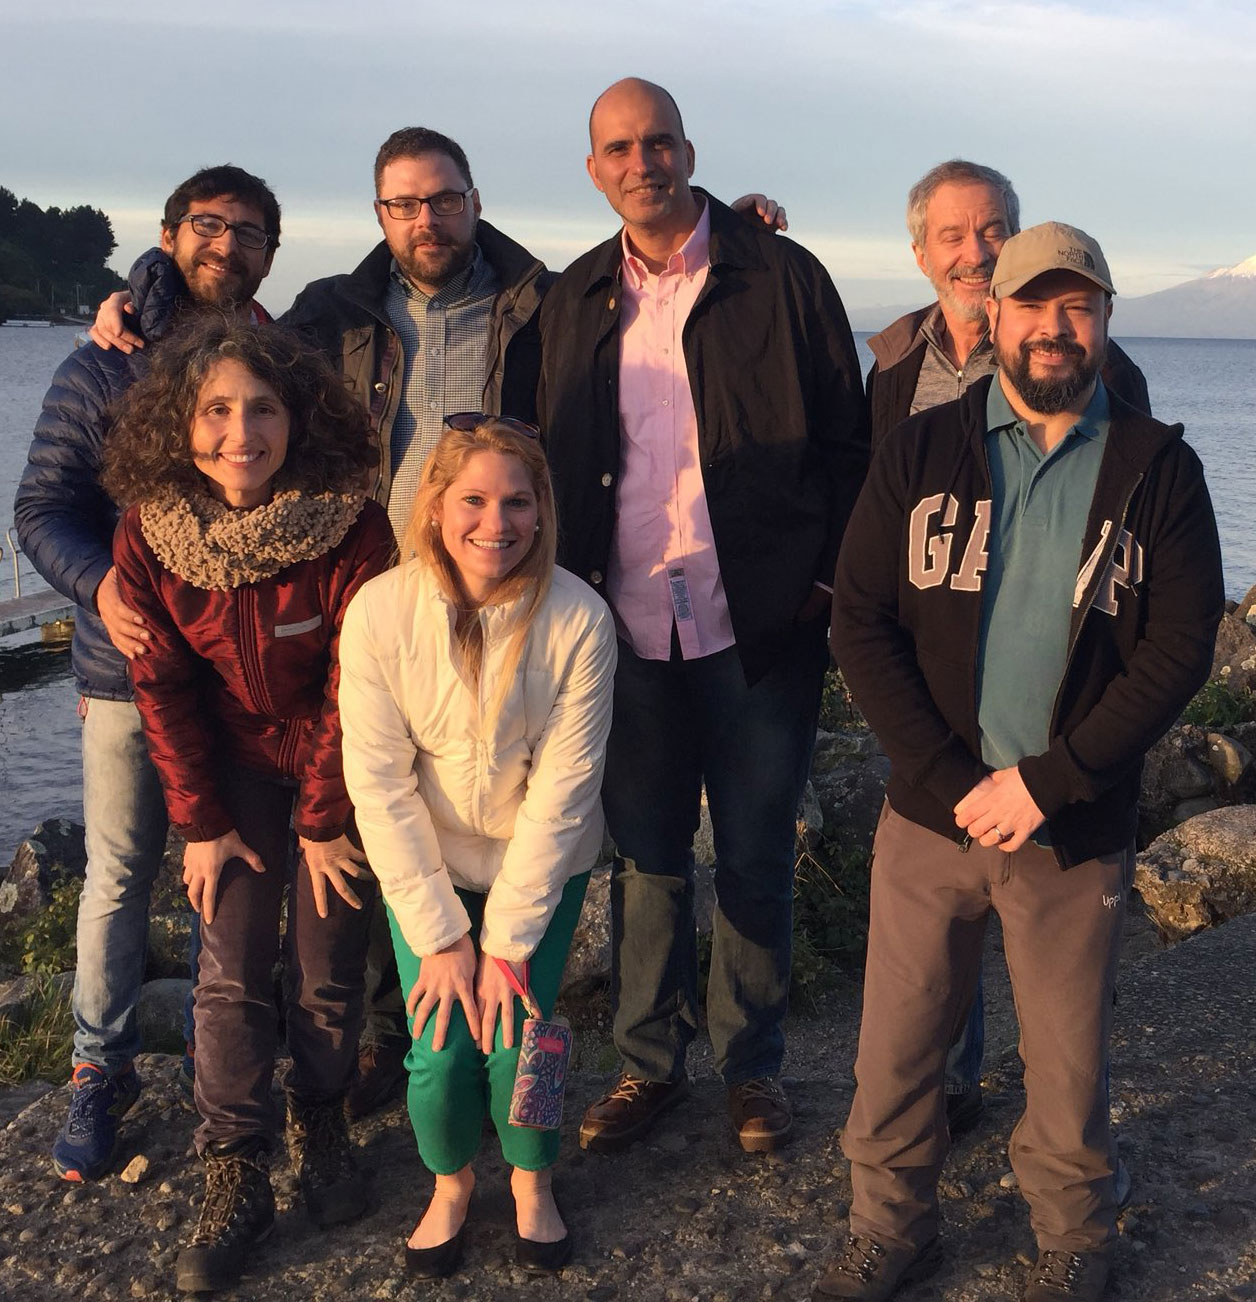 UMN faculty and researchers in Puerto Varas, Chile smiling at the camera